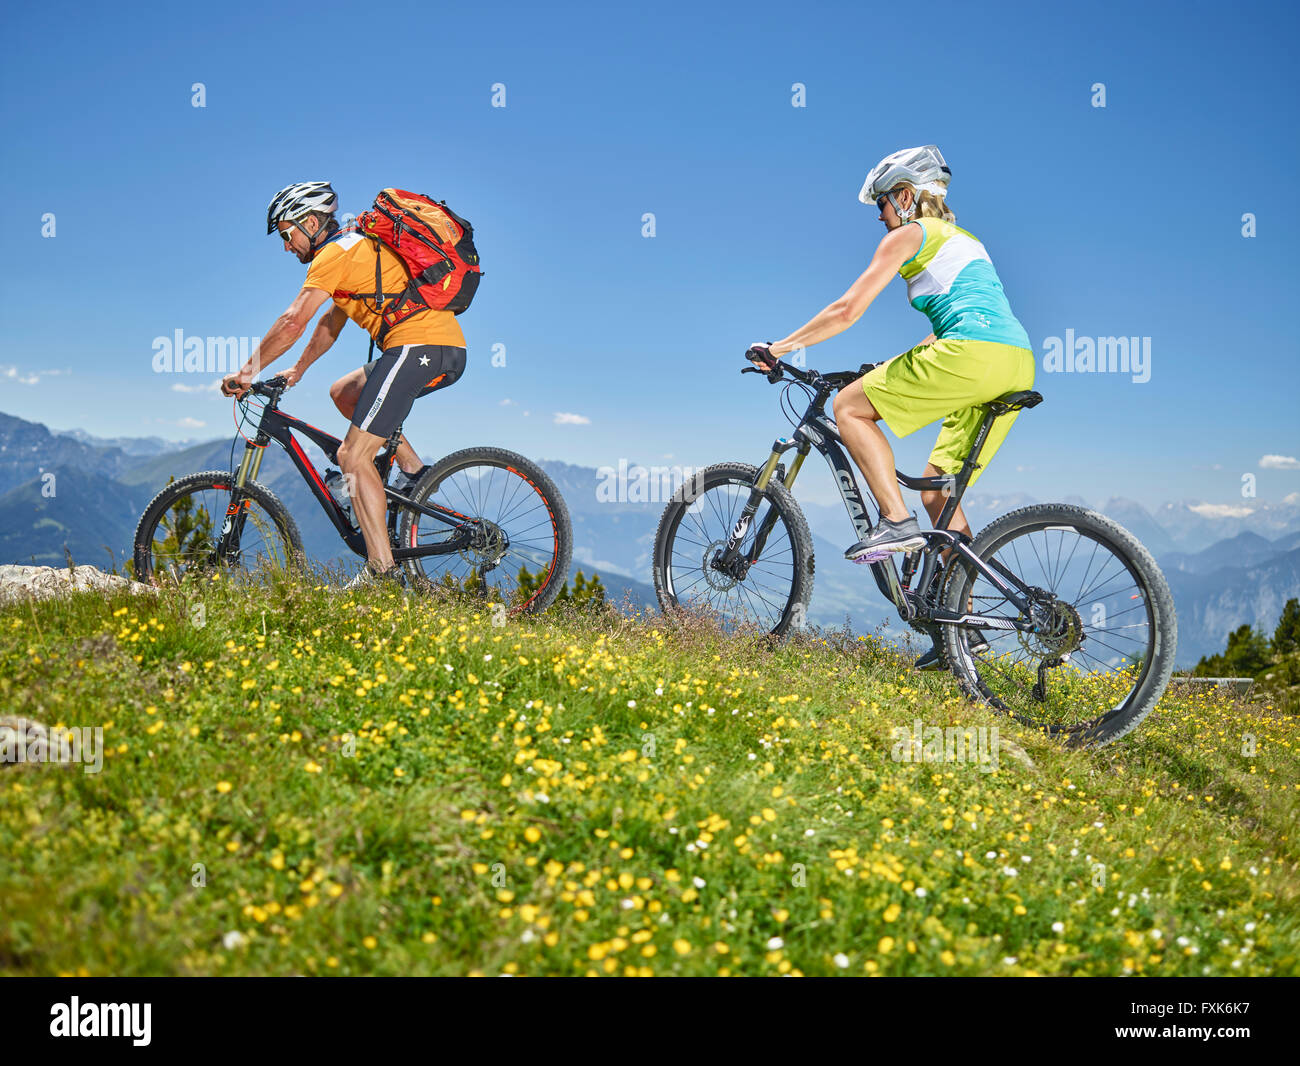 Man 40-45 years and woman 35-40 years with helmets cycle with their mountain bikes, Zirbenweg, Patscherkofel, Innsbruck, - Stock Image